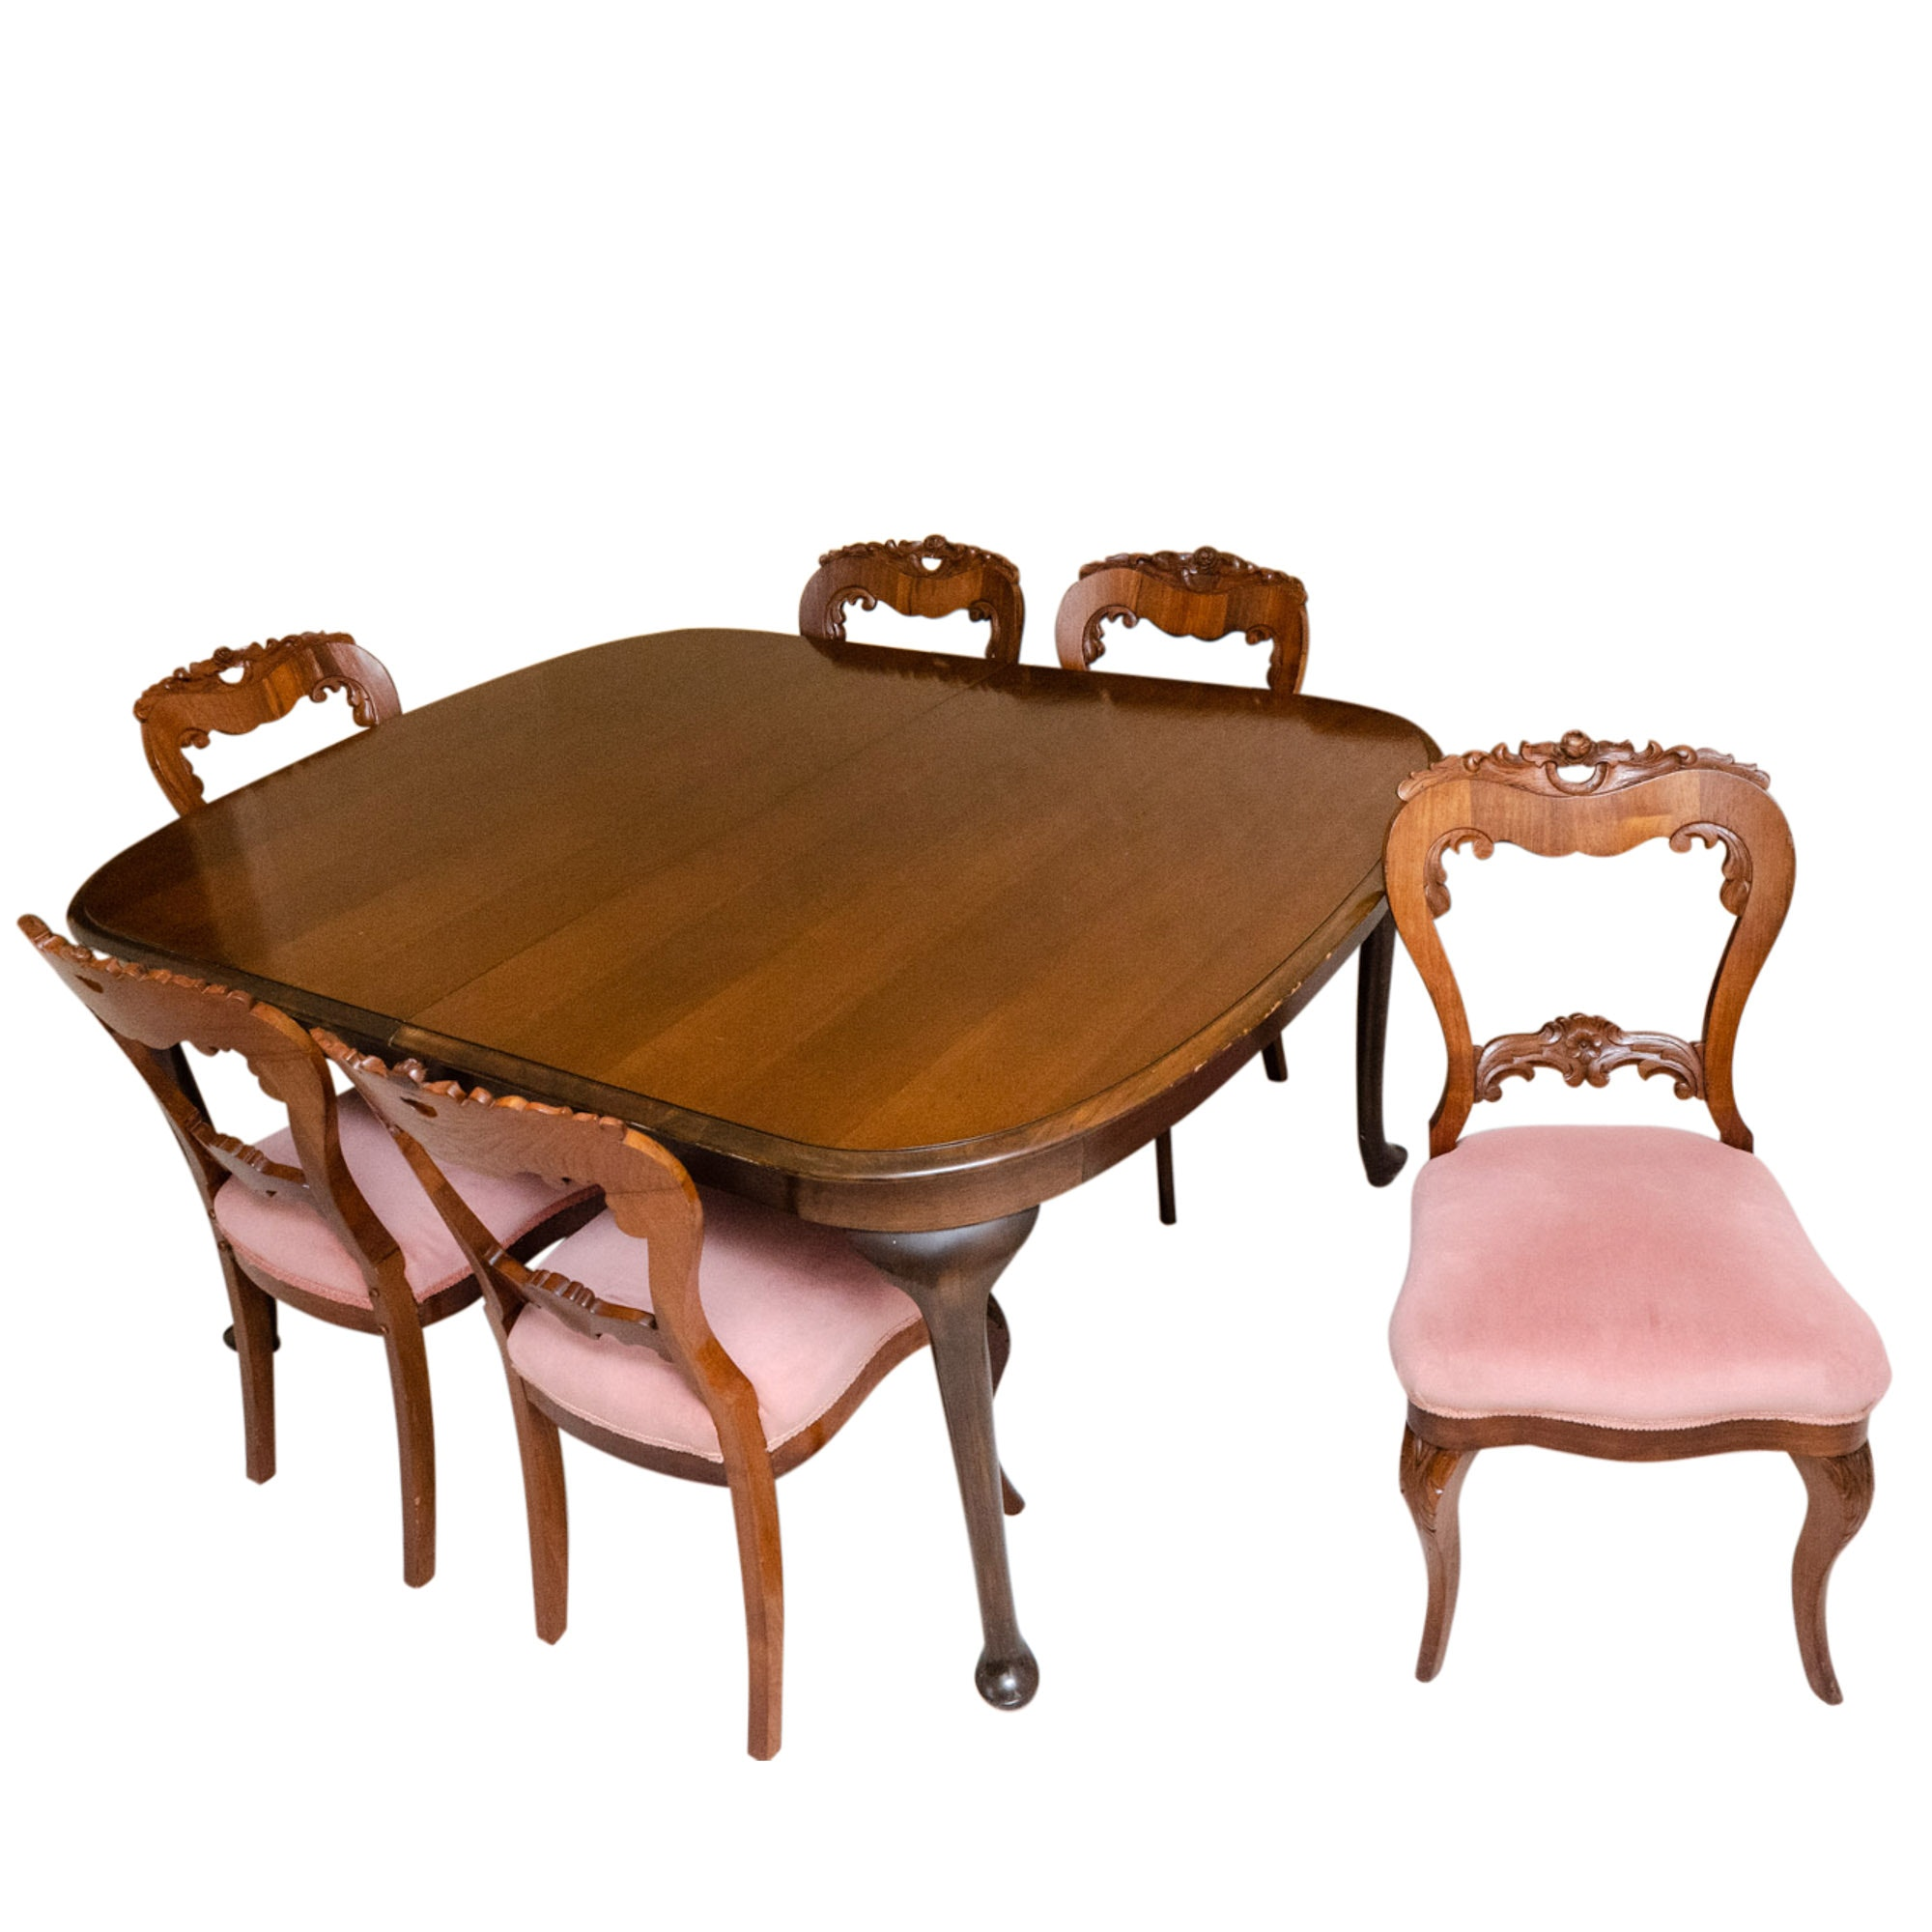 Queen Anne Style Cherrywood Dining Table and 19th Century Carved Walnut Chairs